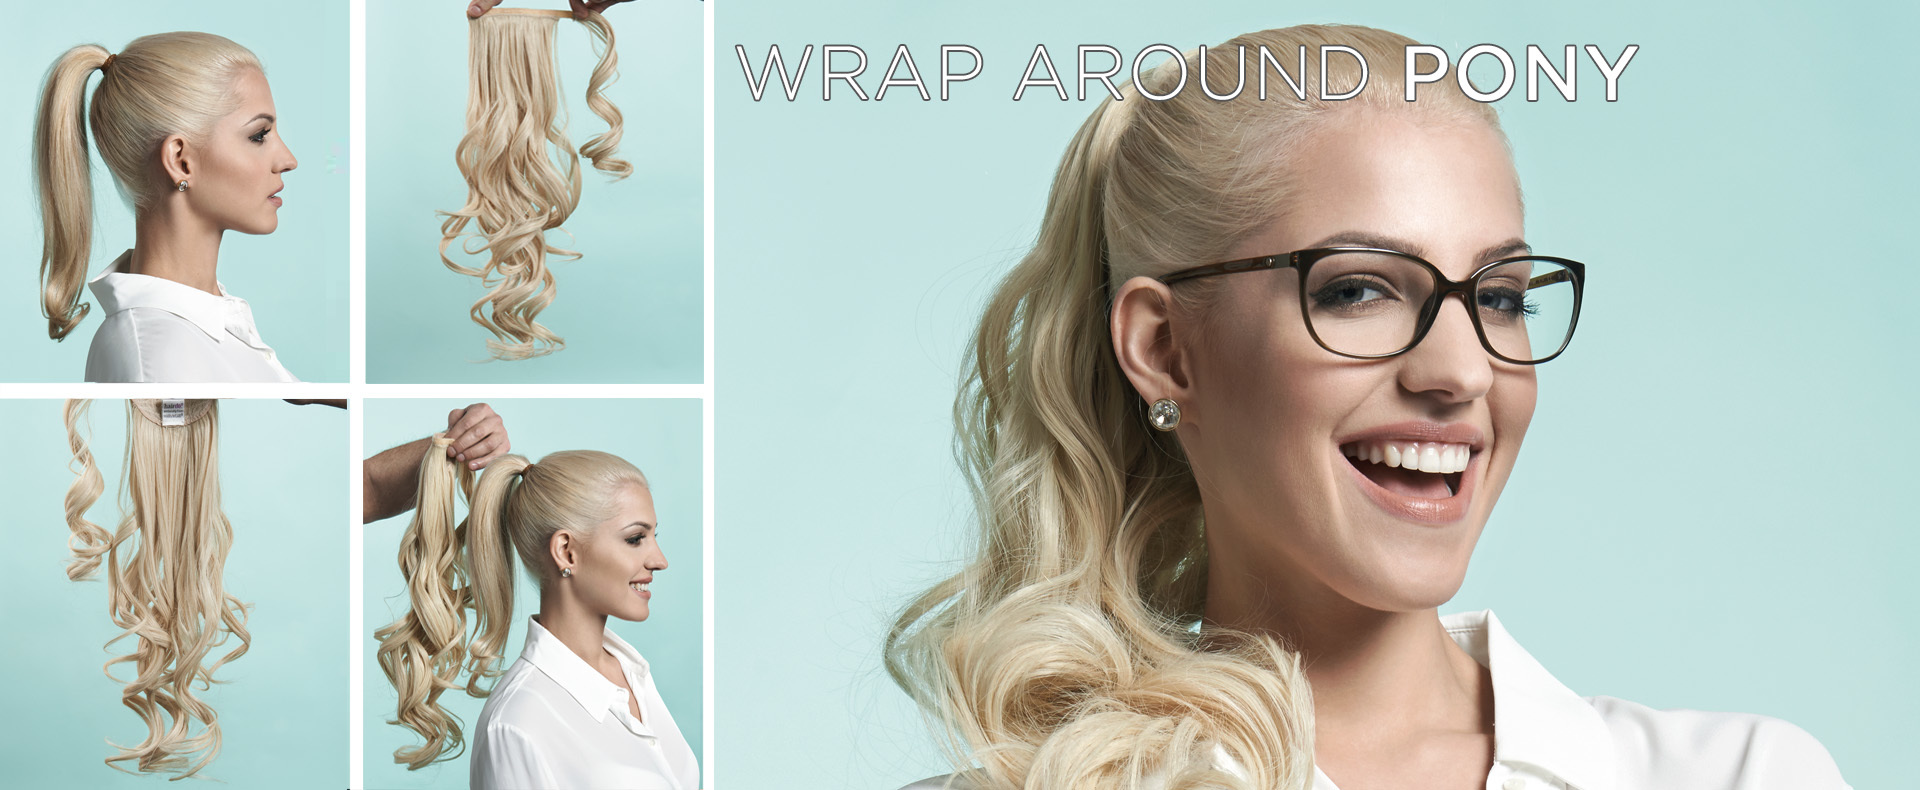 Wrap Around Pony (© Great Lengths)